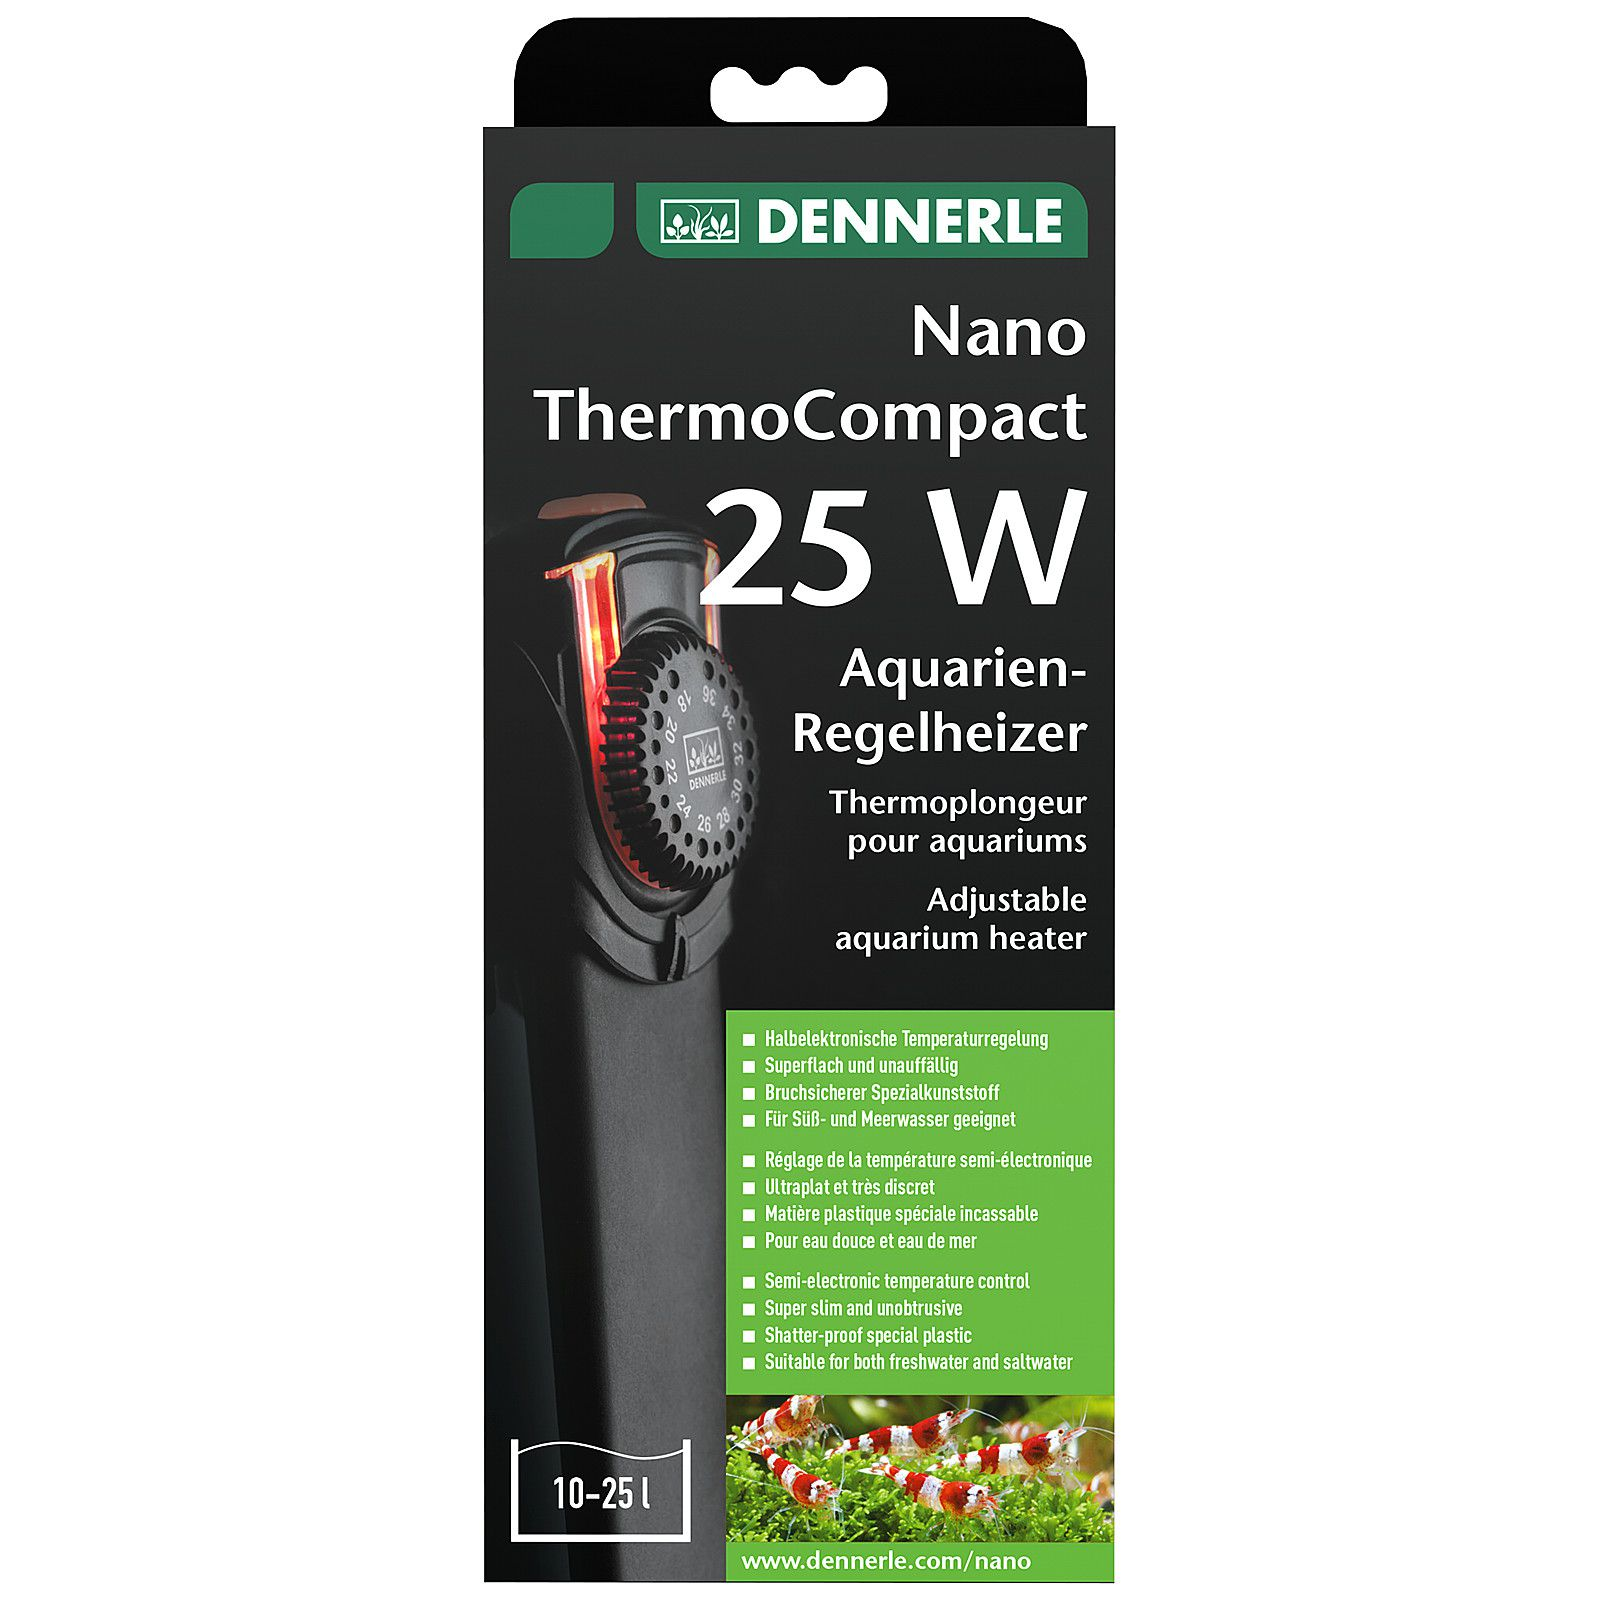 Dennerle - Nano ThermoCompact - 50 W